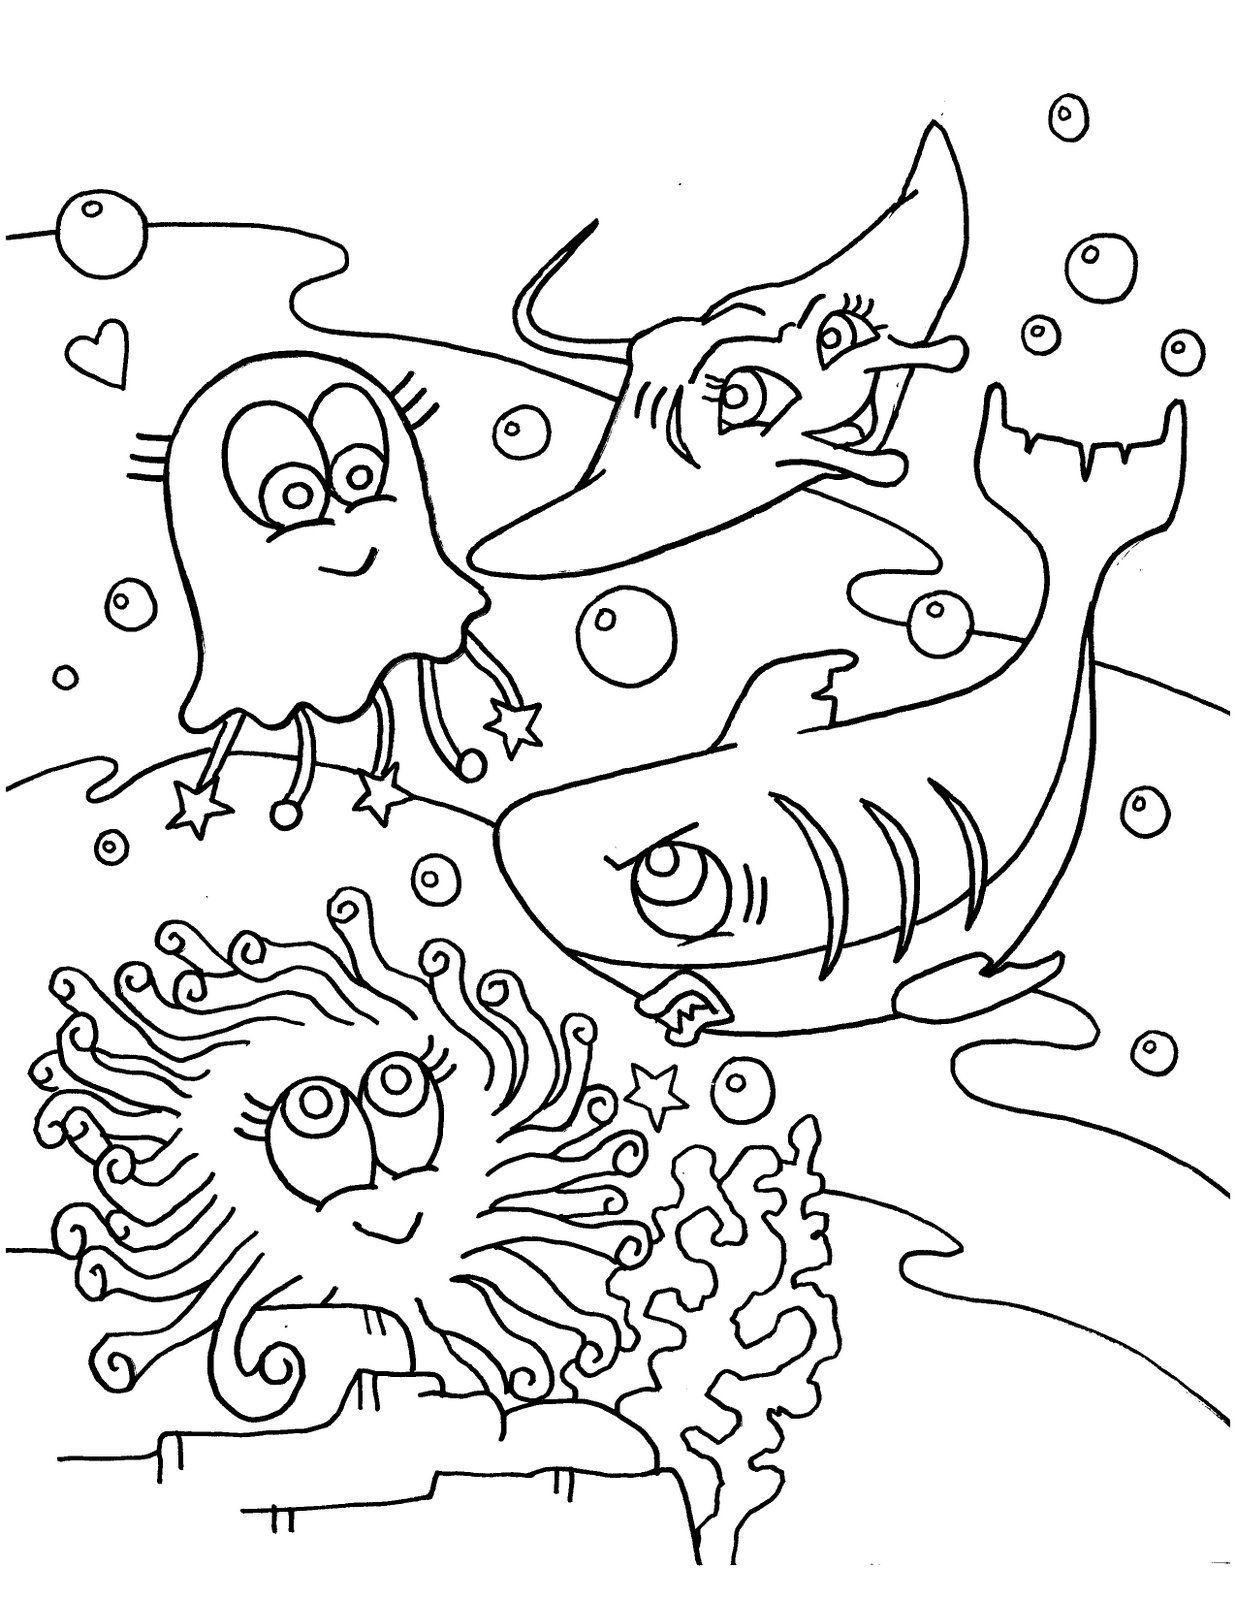 under the sea coloring under the sea coloring pages to download and print for free under sea the coloring 1 1